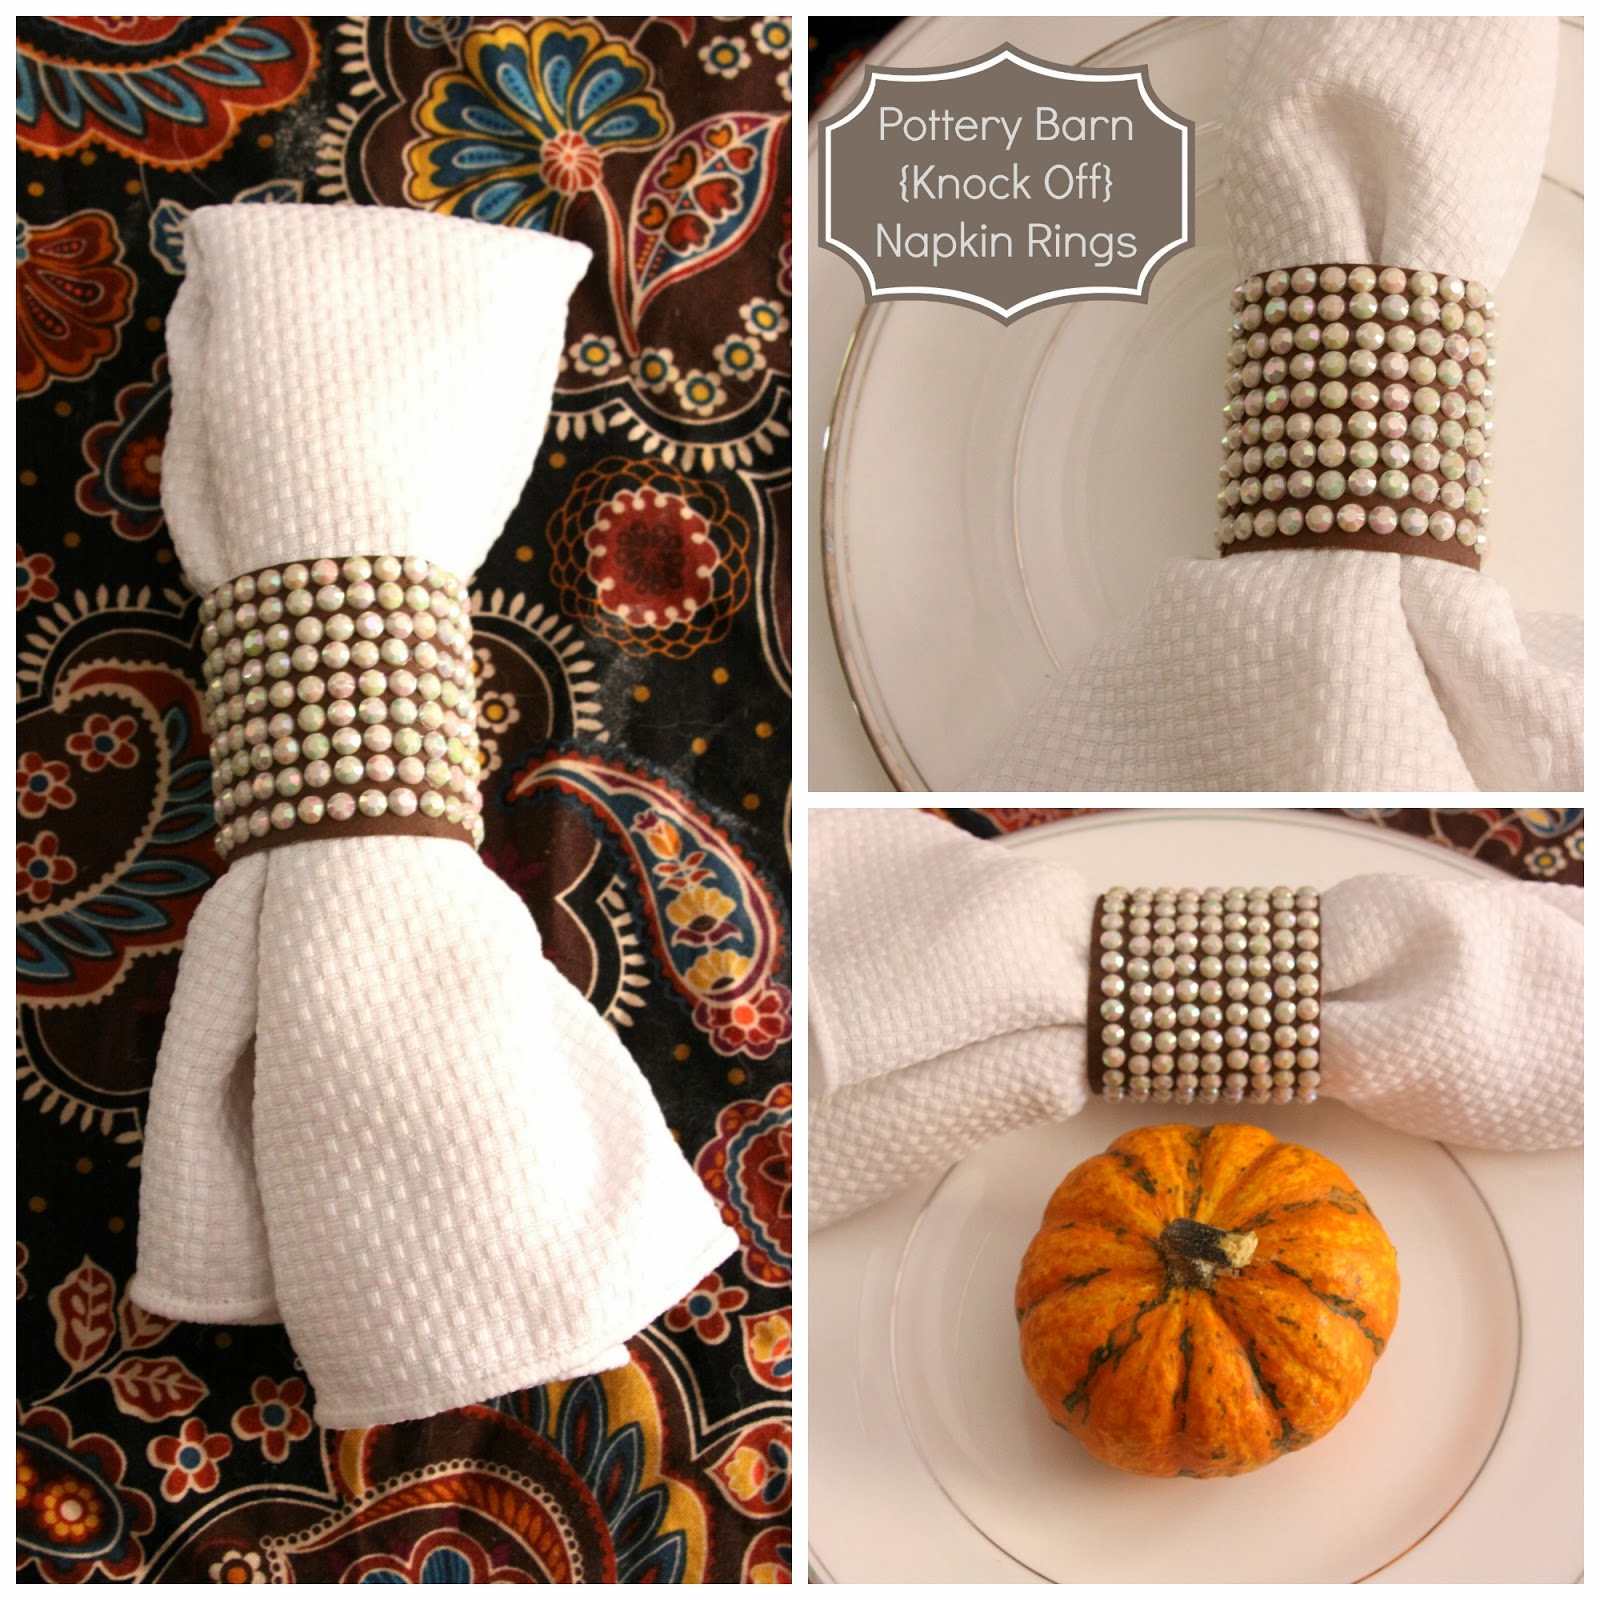 Our Pinteresting Family Pottery Barn Knock Off Napkin Rings